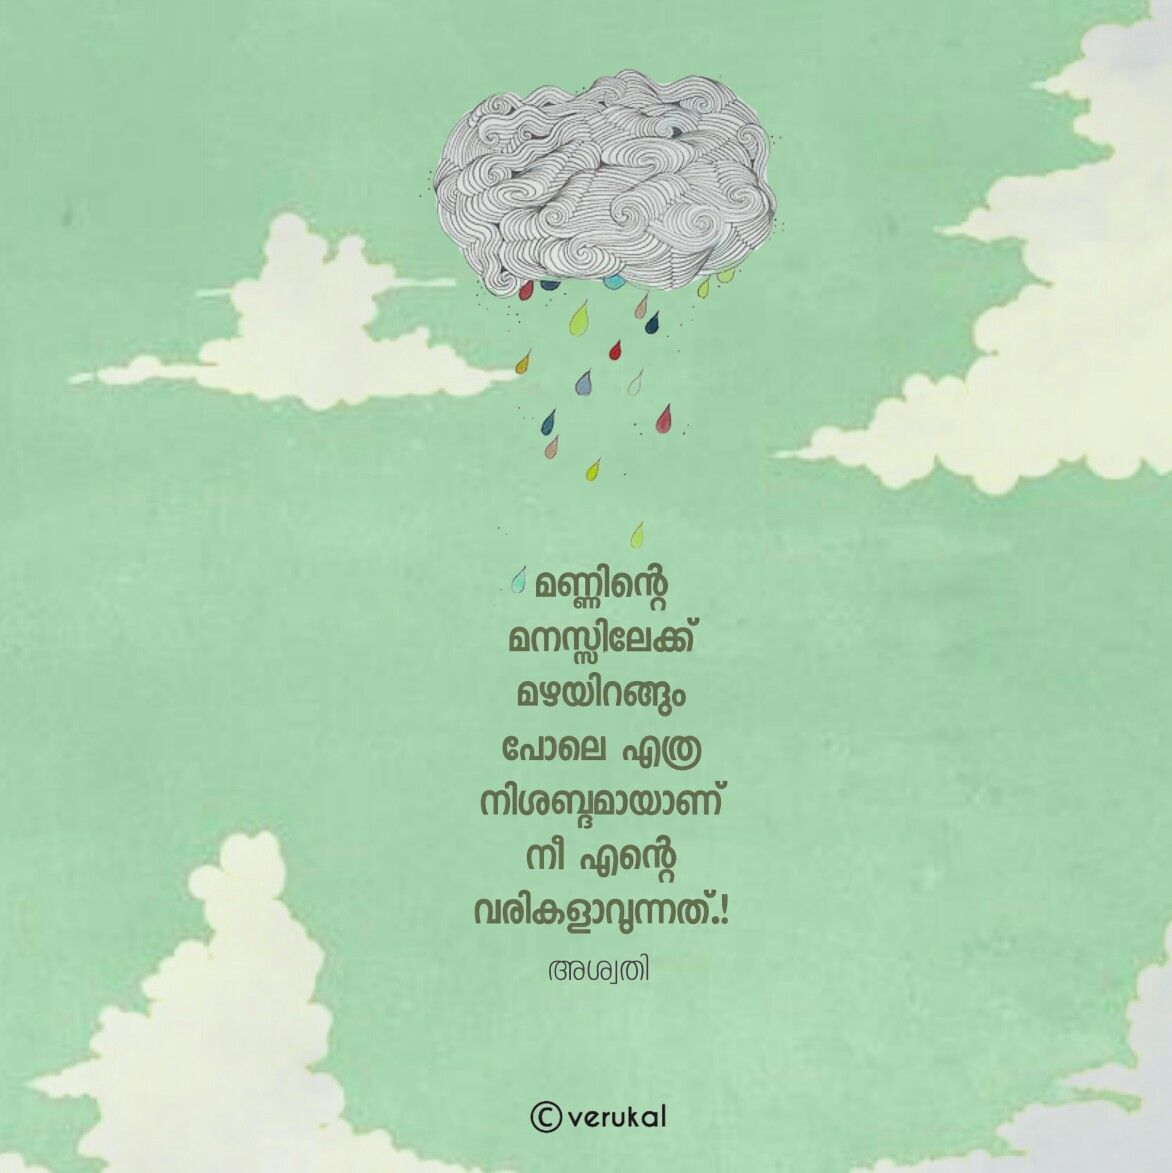 Pin By Sreerag Murali On Verukal Malayalam Quotes Quotes Thoughts